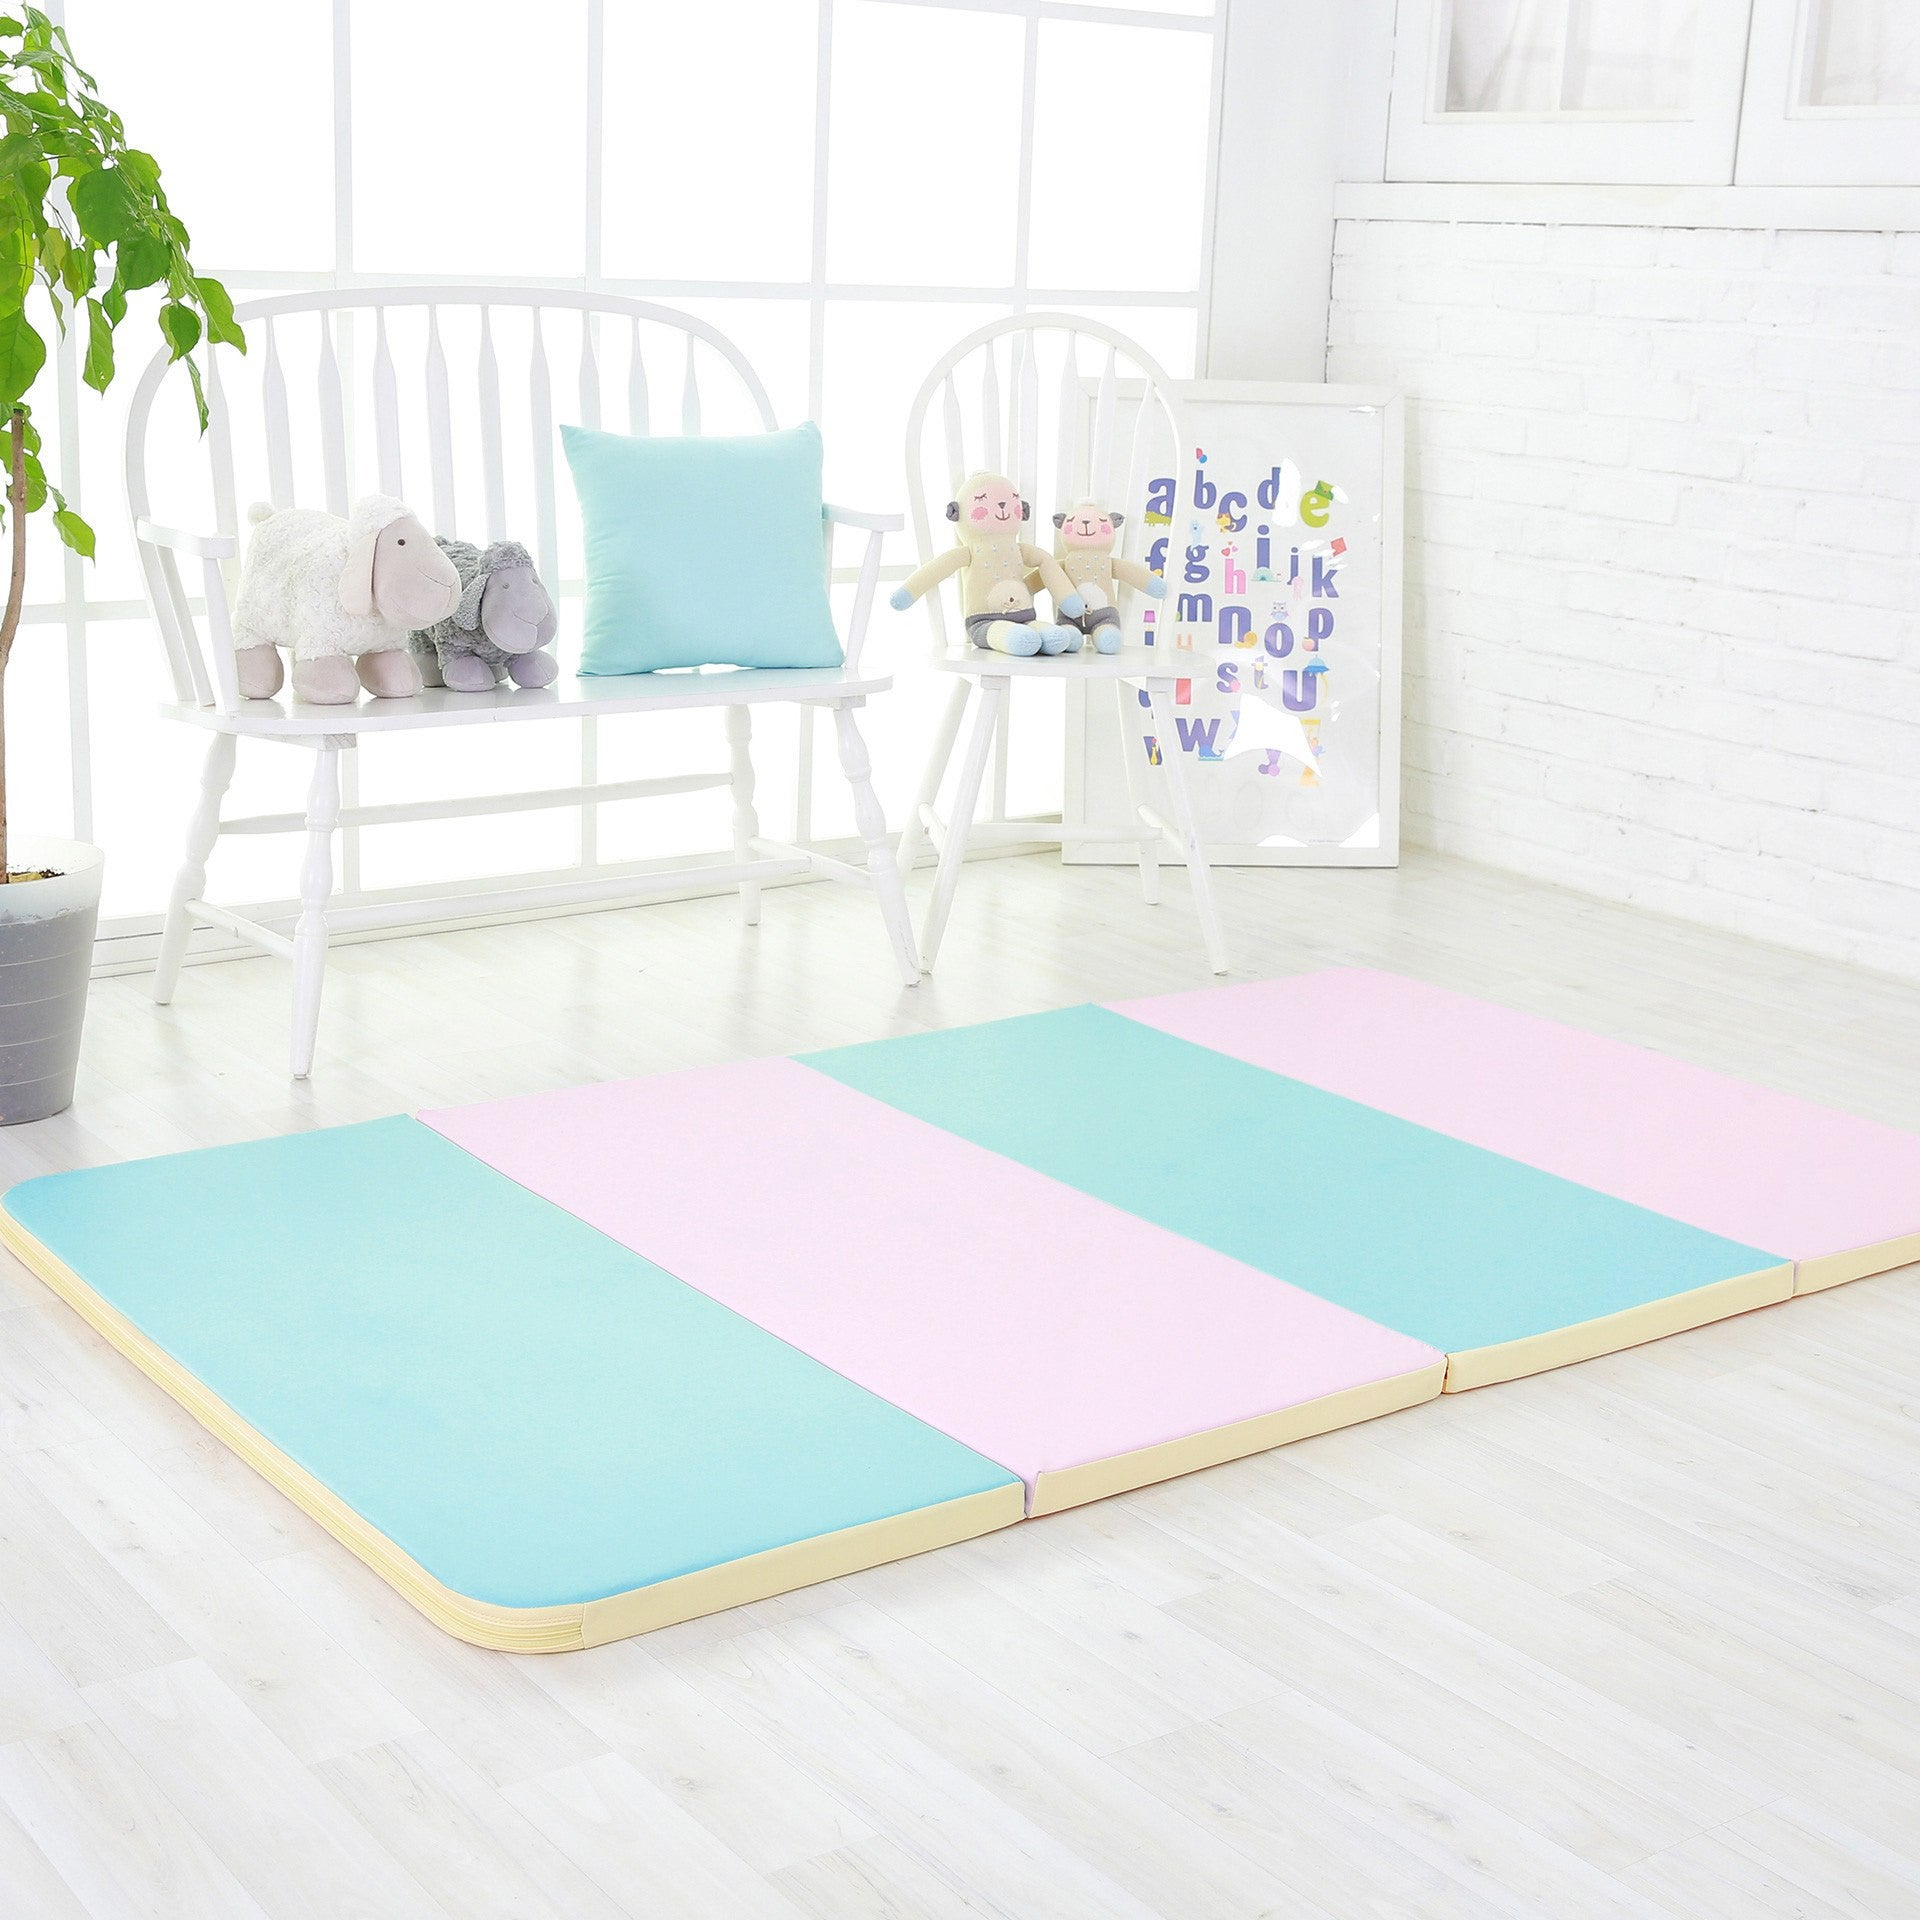 marshmallow baby play mat (foldable)  ifam (made in south korea  - baby mats  marshmallow folder baby mat